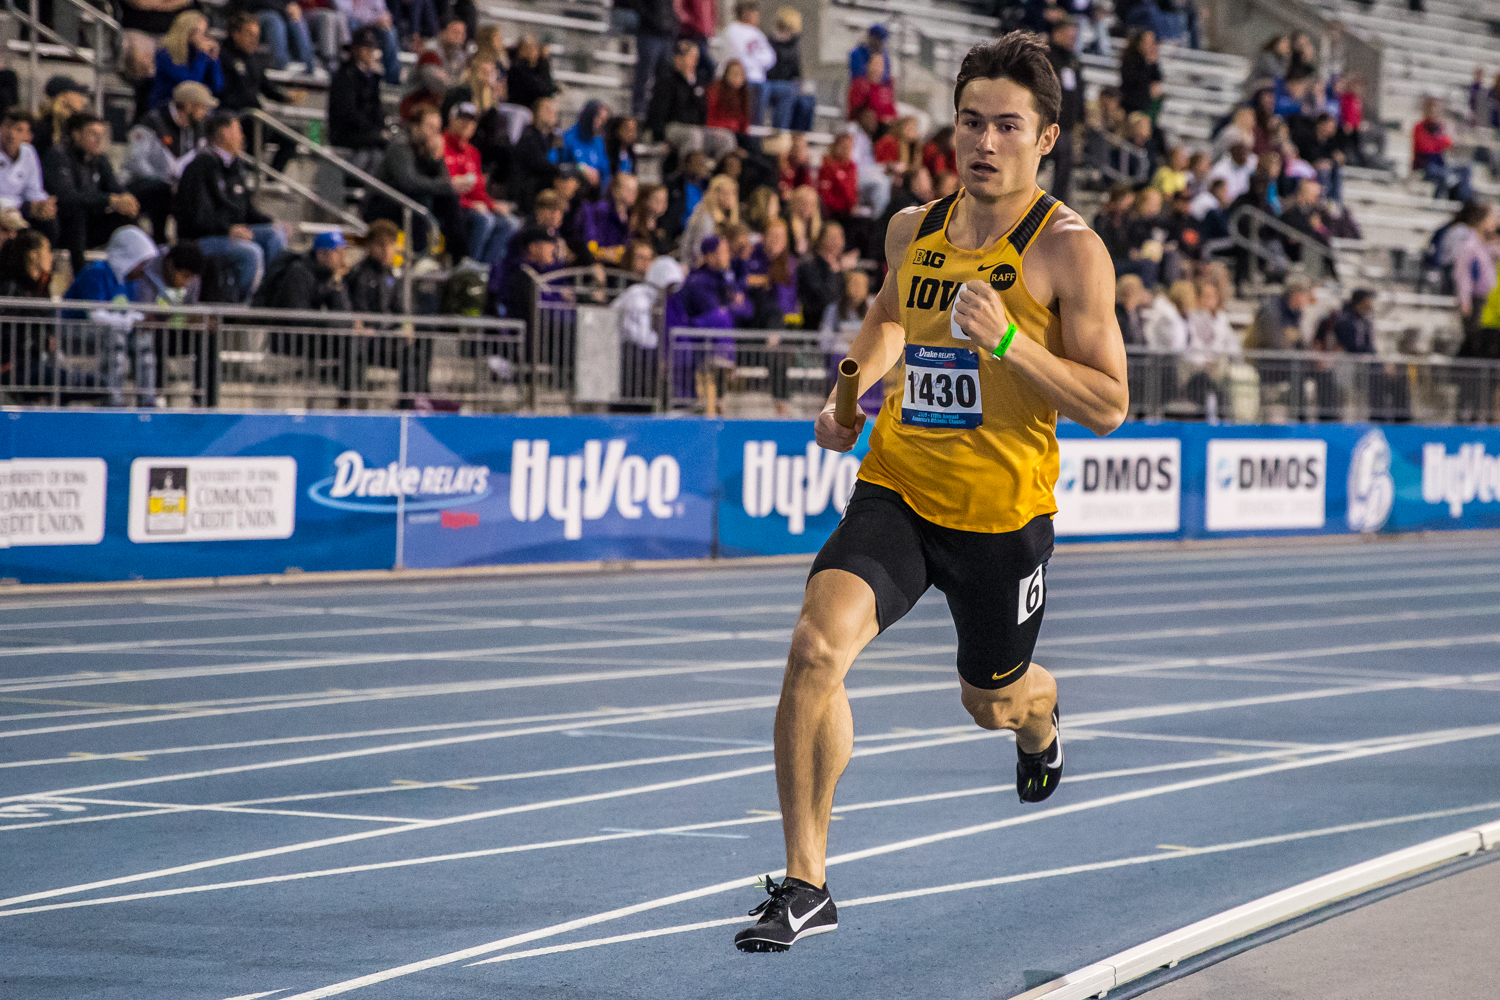 Iowa's Carter Lilly rounds the track during the men's 4x800m race at the 2019 Drake Relays in Des Moines, IA, on Friday, April 26, 2019.